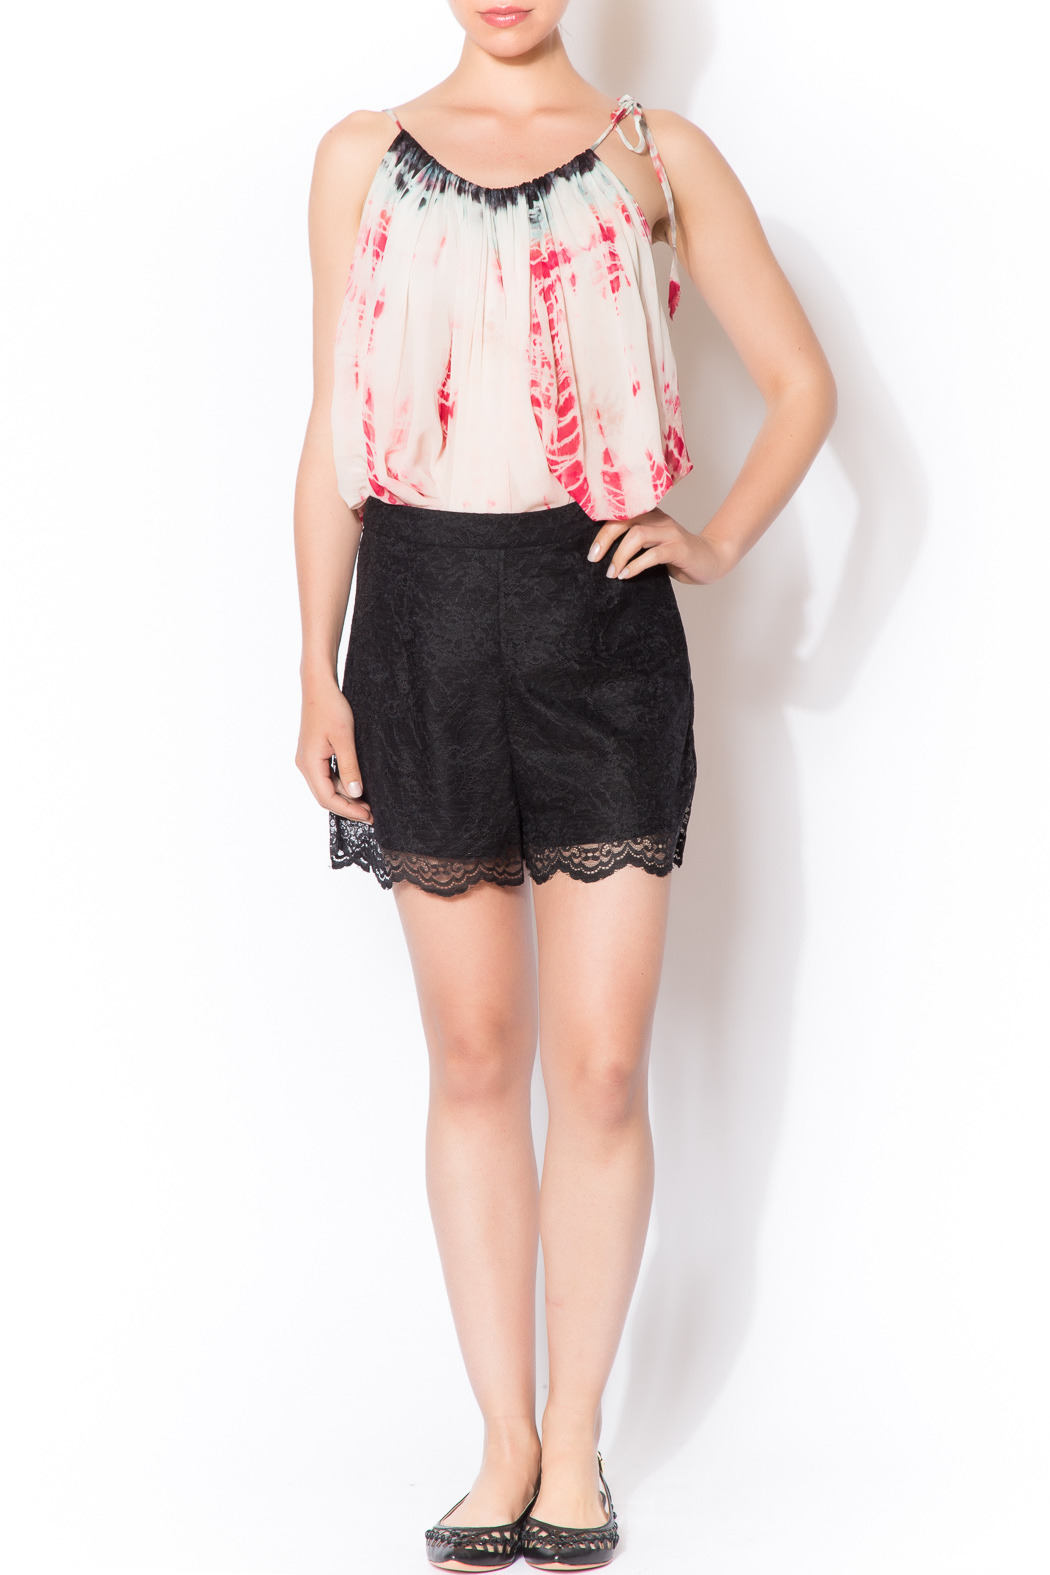 CCH Collection Lace Black Shorts - Front Full Image